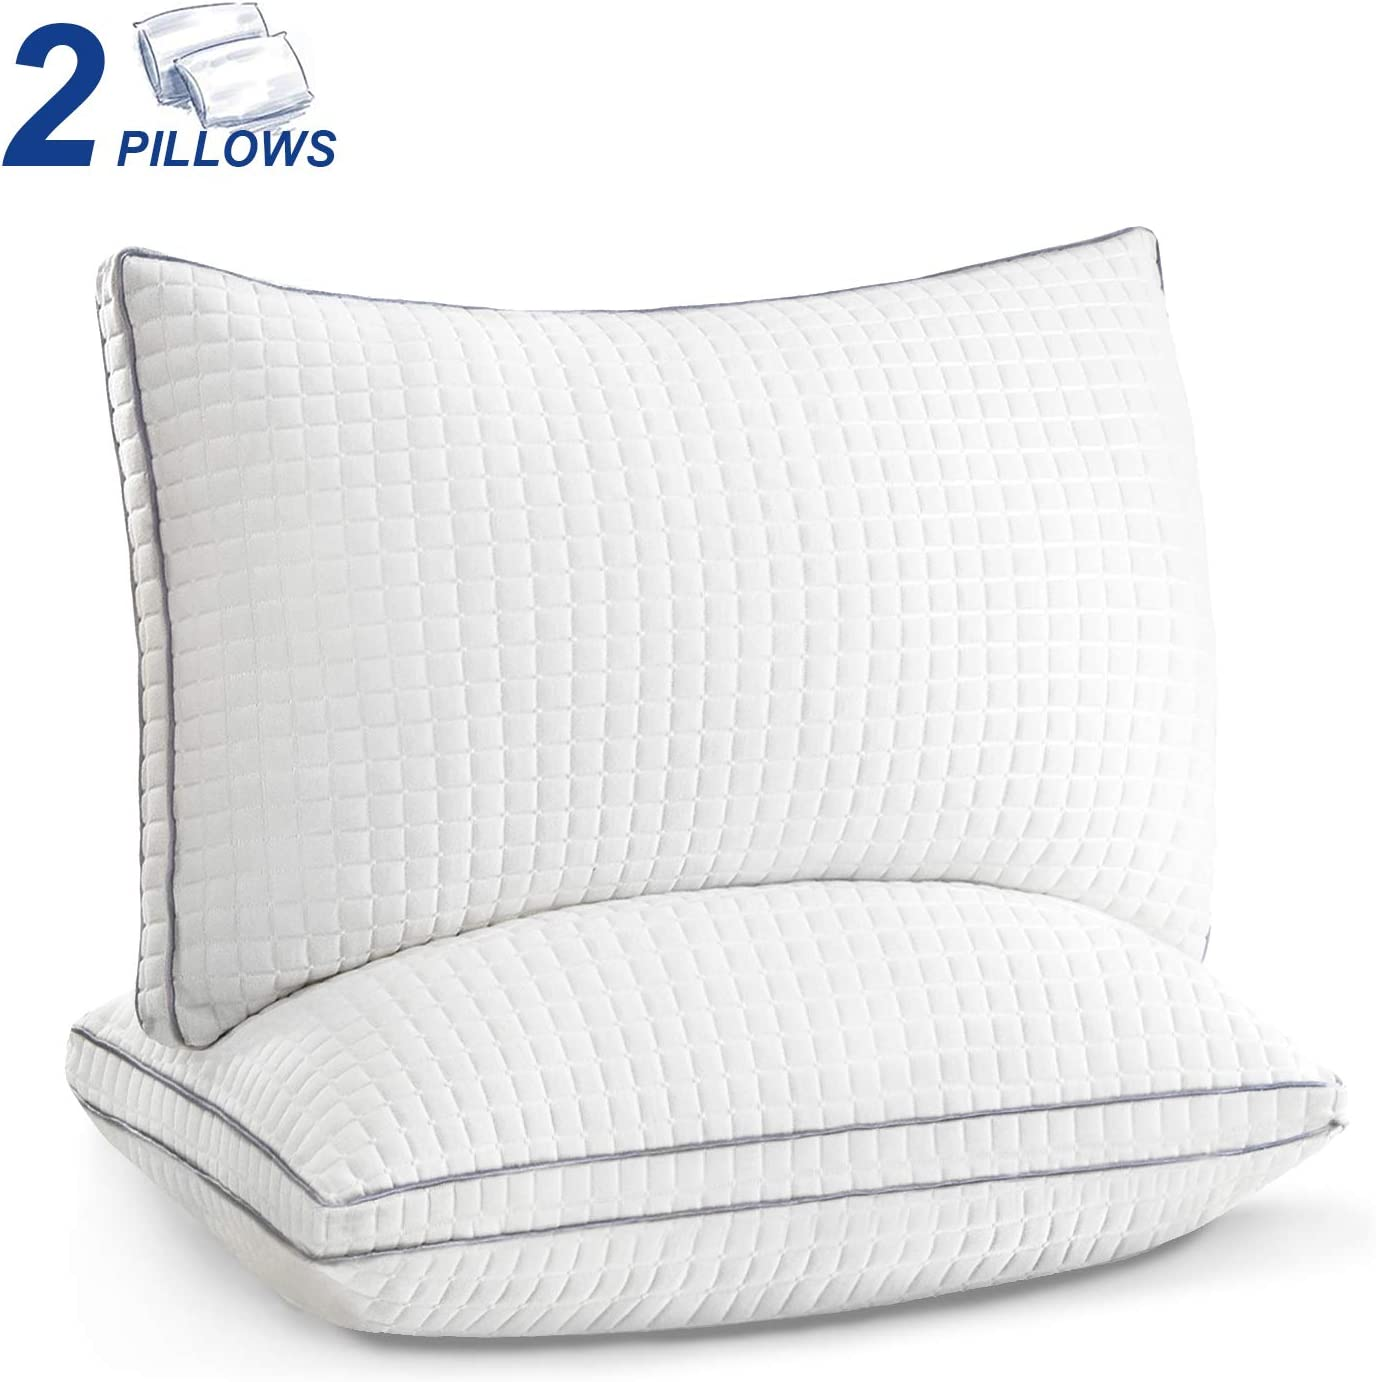 Pillows for Sleeping 2 Pack, Hotel Down Alternative Sleeping Bed Pillows with Adjustable Plush Fiber Fill, Hypoallergenic Soft Firm Pillows for Back, Stomach, Side Sleepers-Standard Size 20 x 26